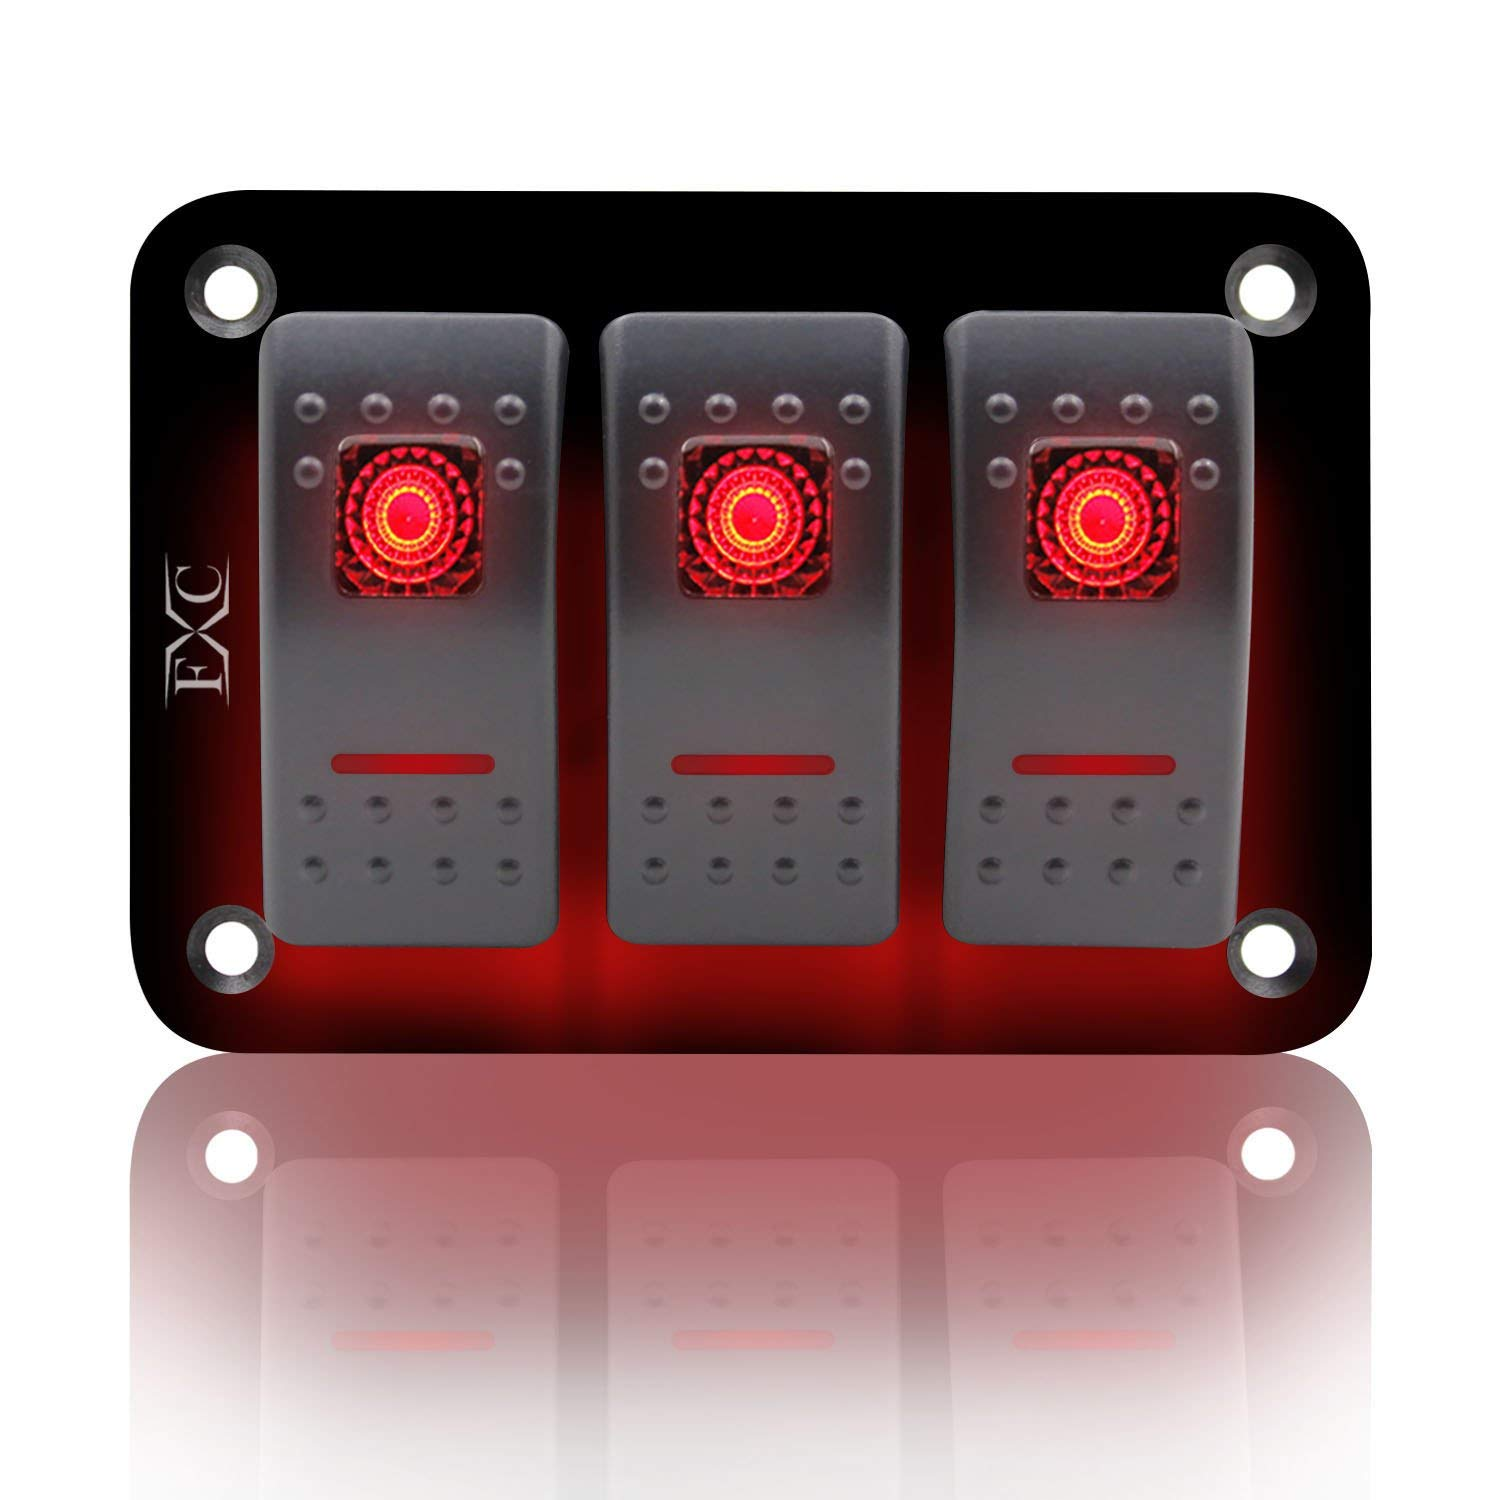 FXC Rocker Switch Aluminum Panel 3 Gang Toggle Switches Dash 5 Pin ON/OFF 2 LED Backlit for Boat Car Marine Red